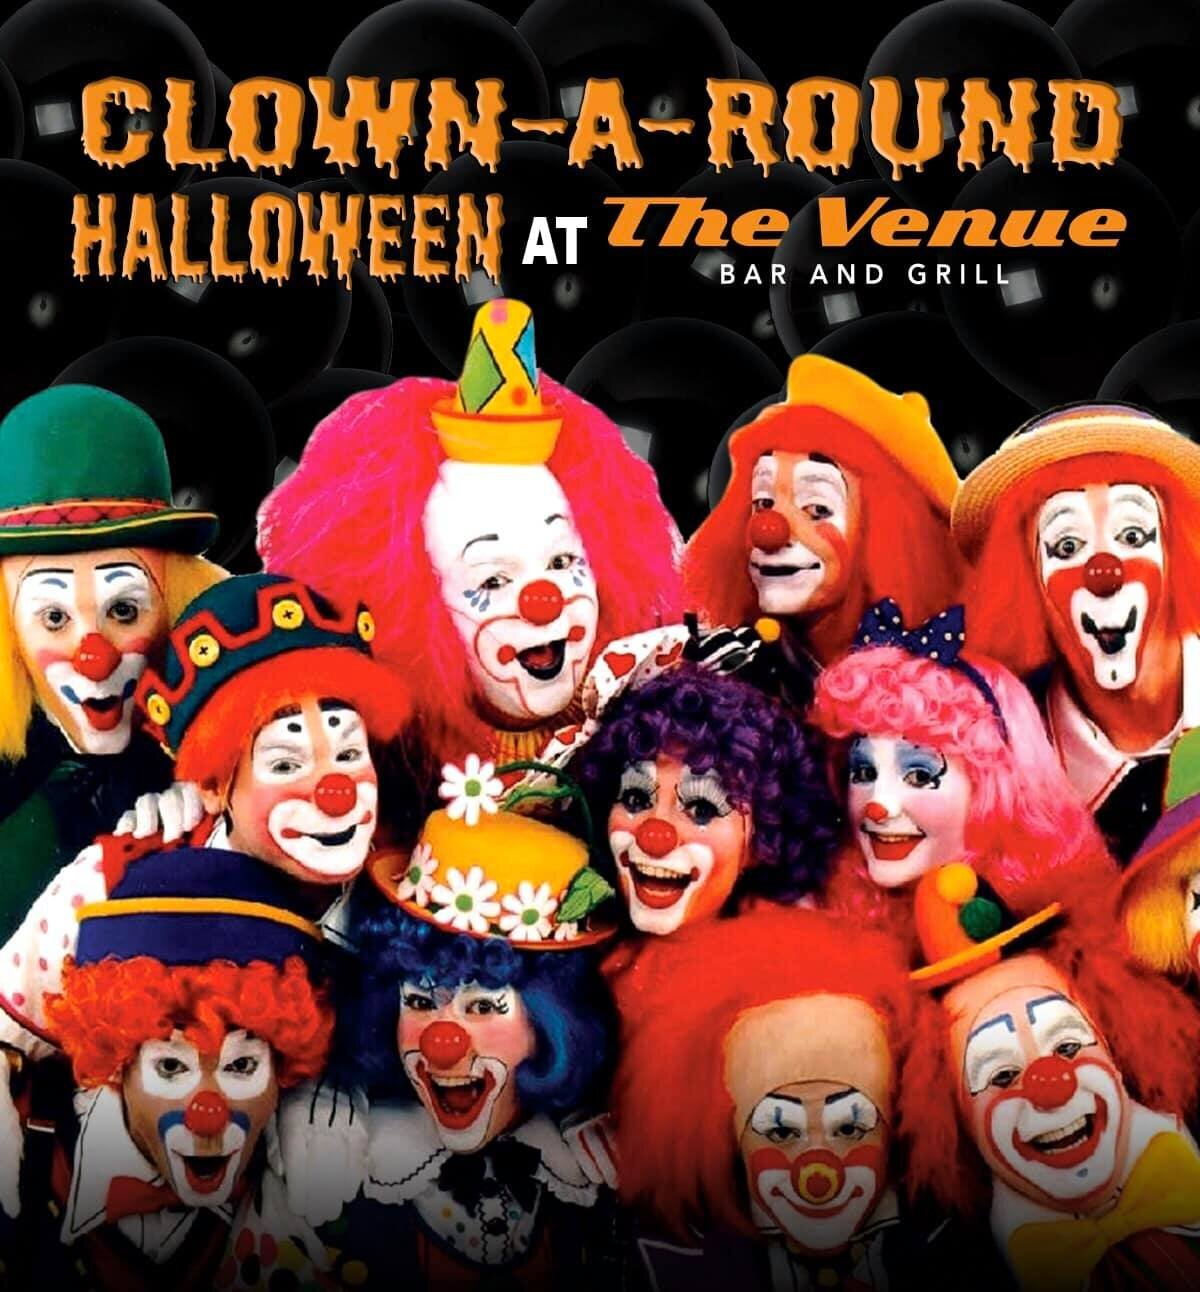 Clown-A-Round Halloween - The Venue Bar & Grill, October 31st, November 1st & 2nd - Creepy cocktails and prizes for best costume!